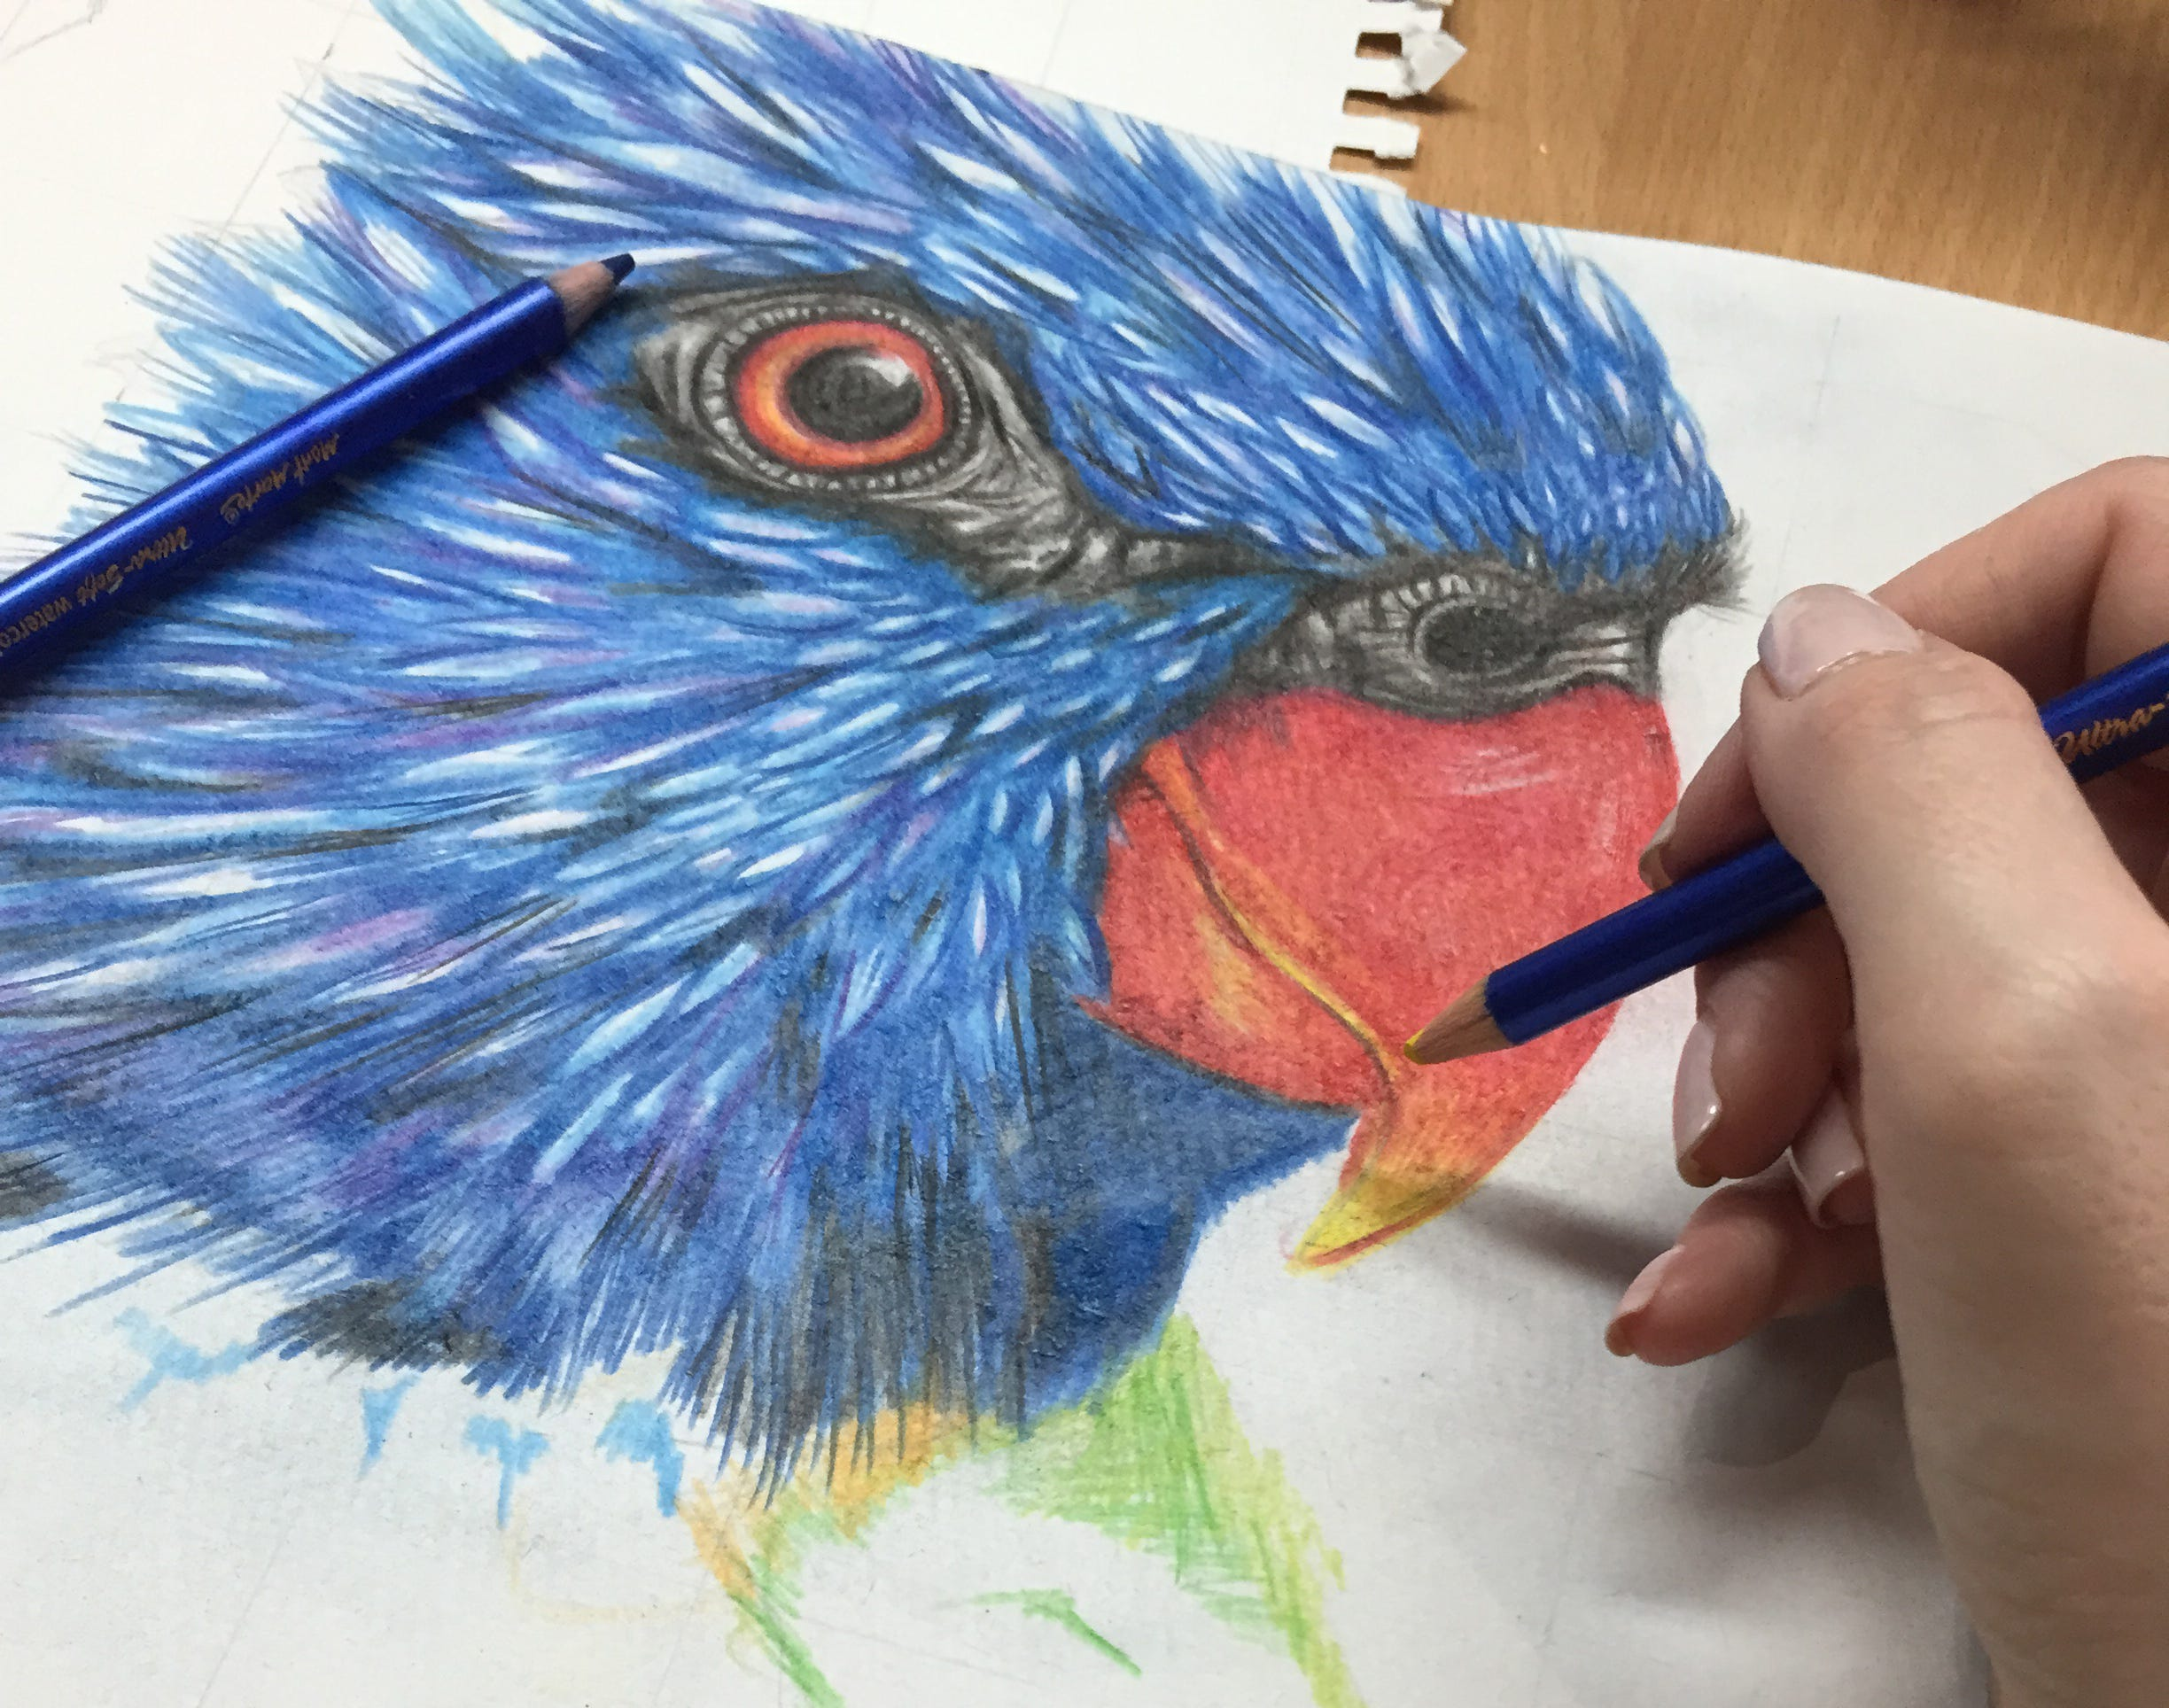 15 drawing ideas that anyone can try image 5